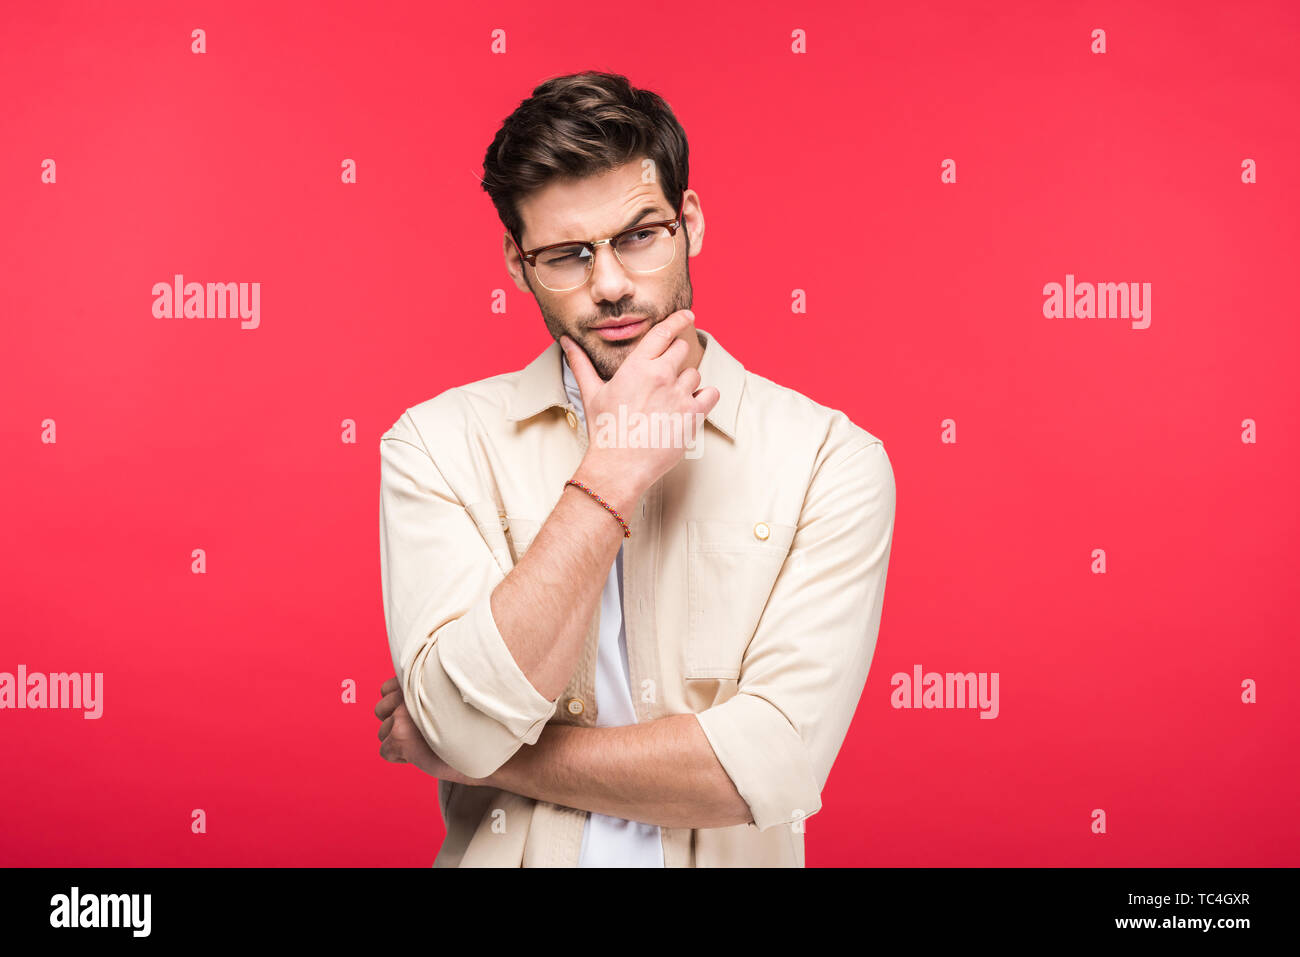 pensive man in glasses touching chin isolated on pink - Stock Image